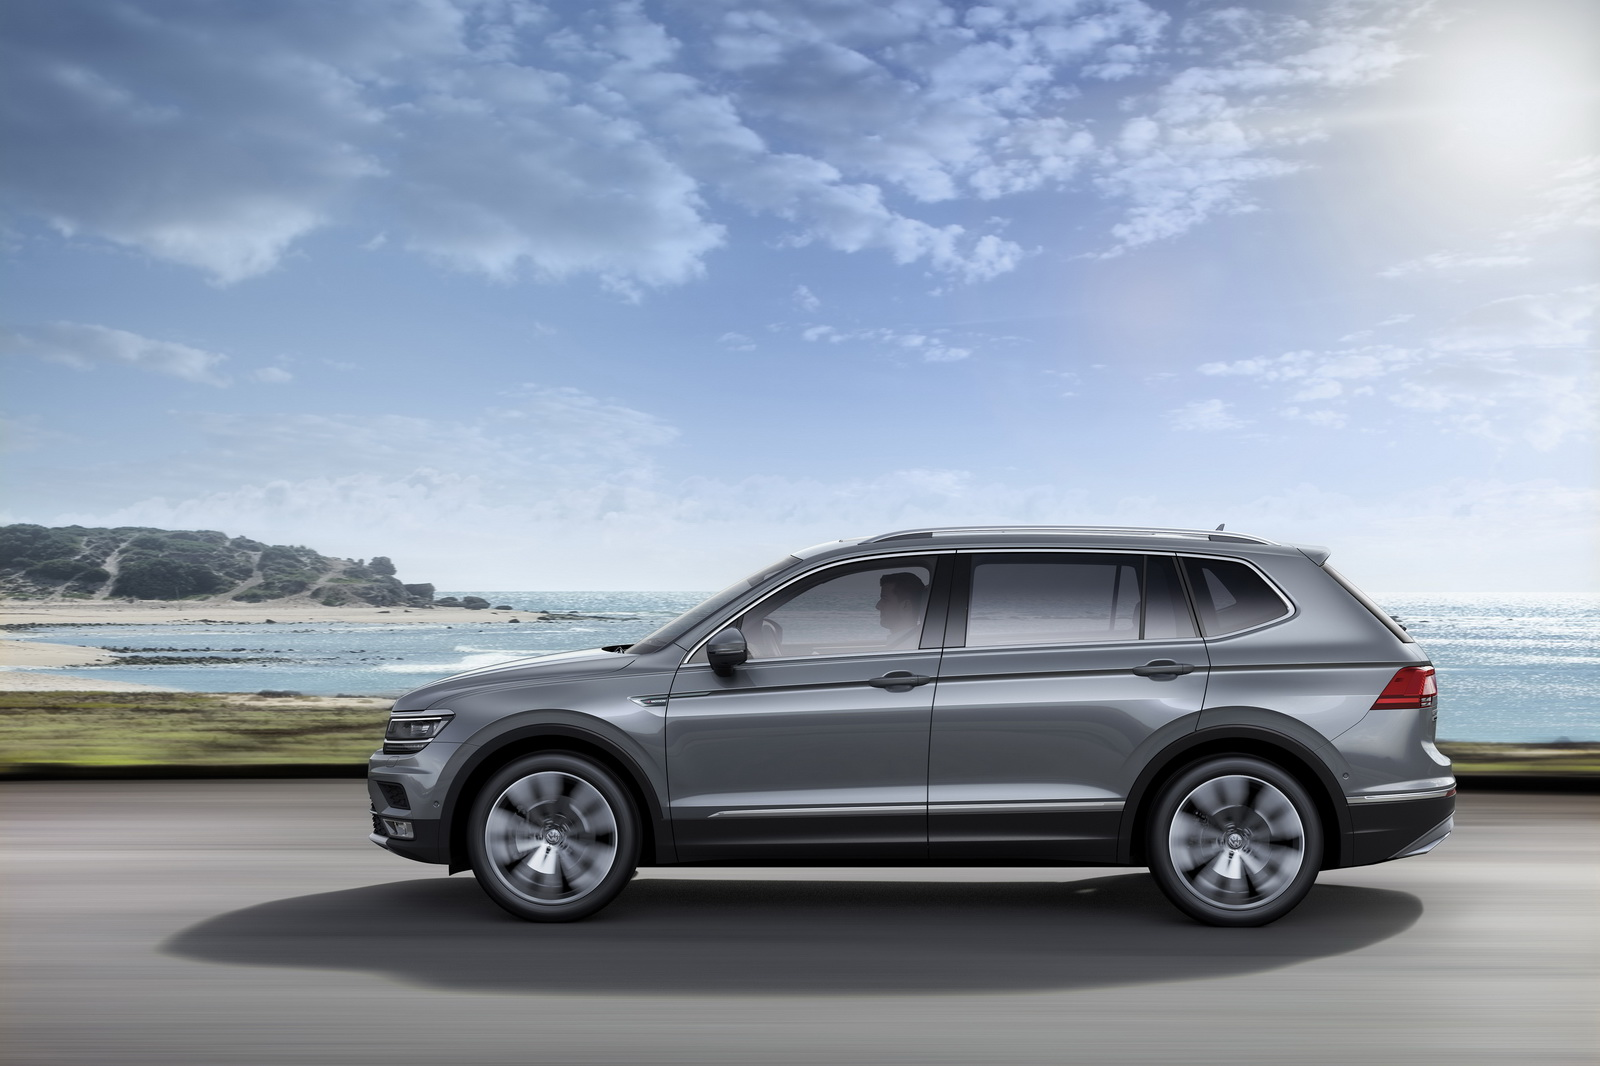 europe 39 s new vw tiguan allspace with 7 seats detailed ahead of geneva carscoops. Black Bedroom Furniture Sets. Home Design Ideas